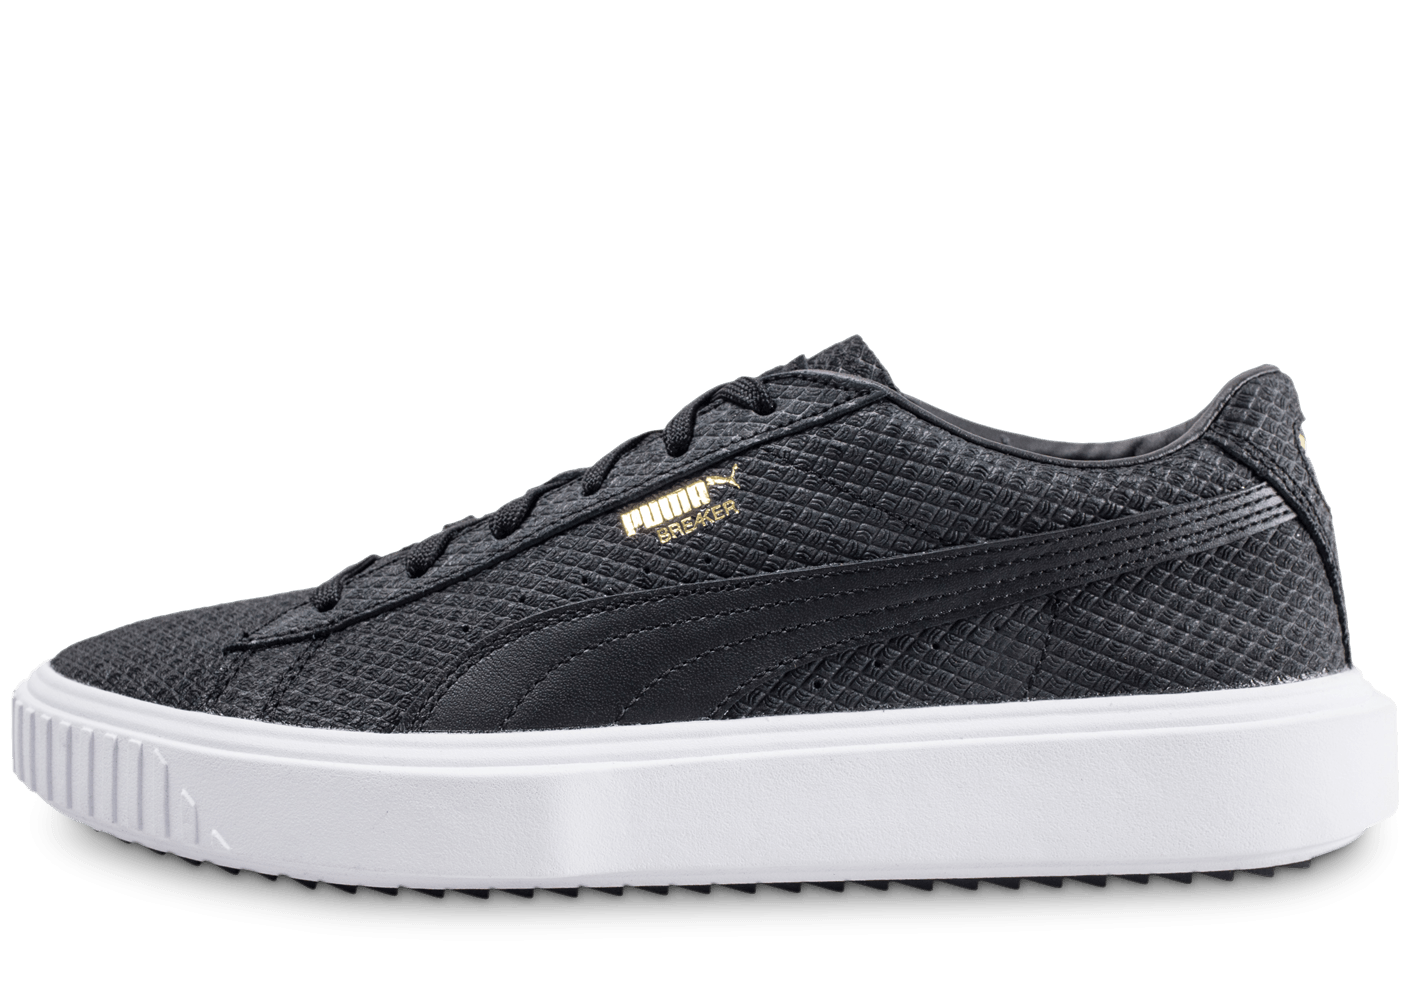 puma homme chaussures 2018